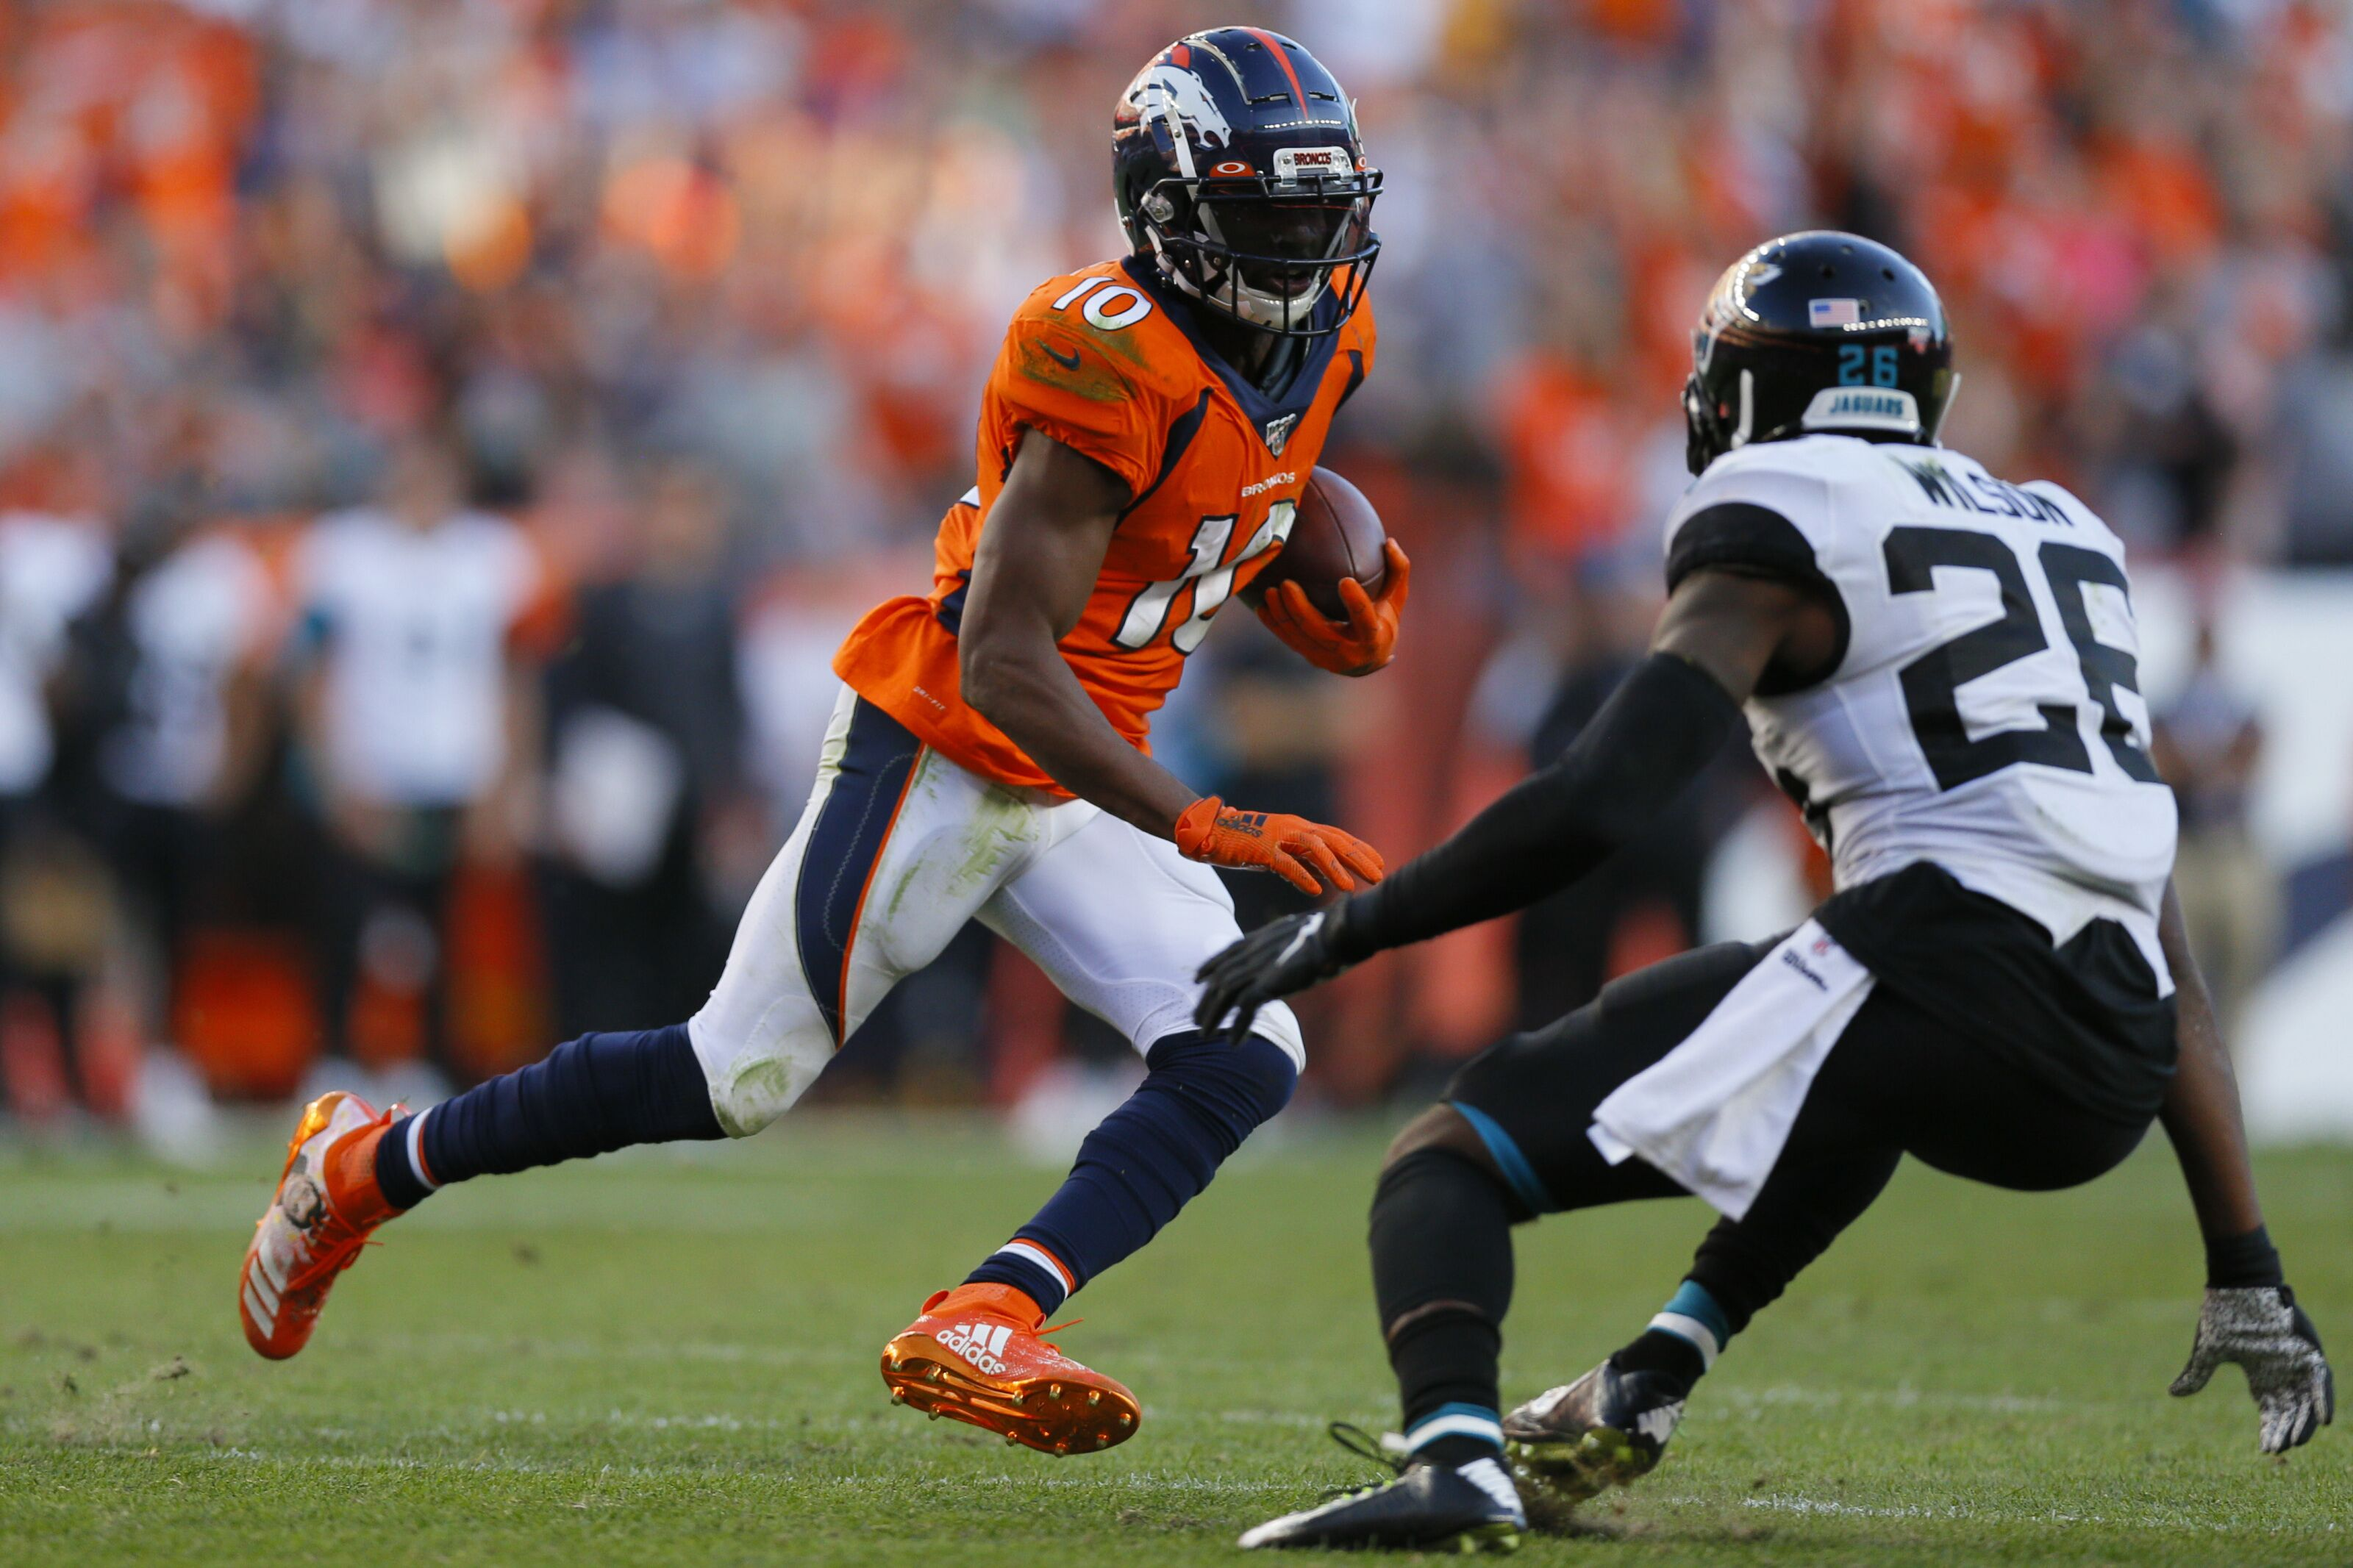 Carolina Panthers should inquire about Emmanuel Sanders